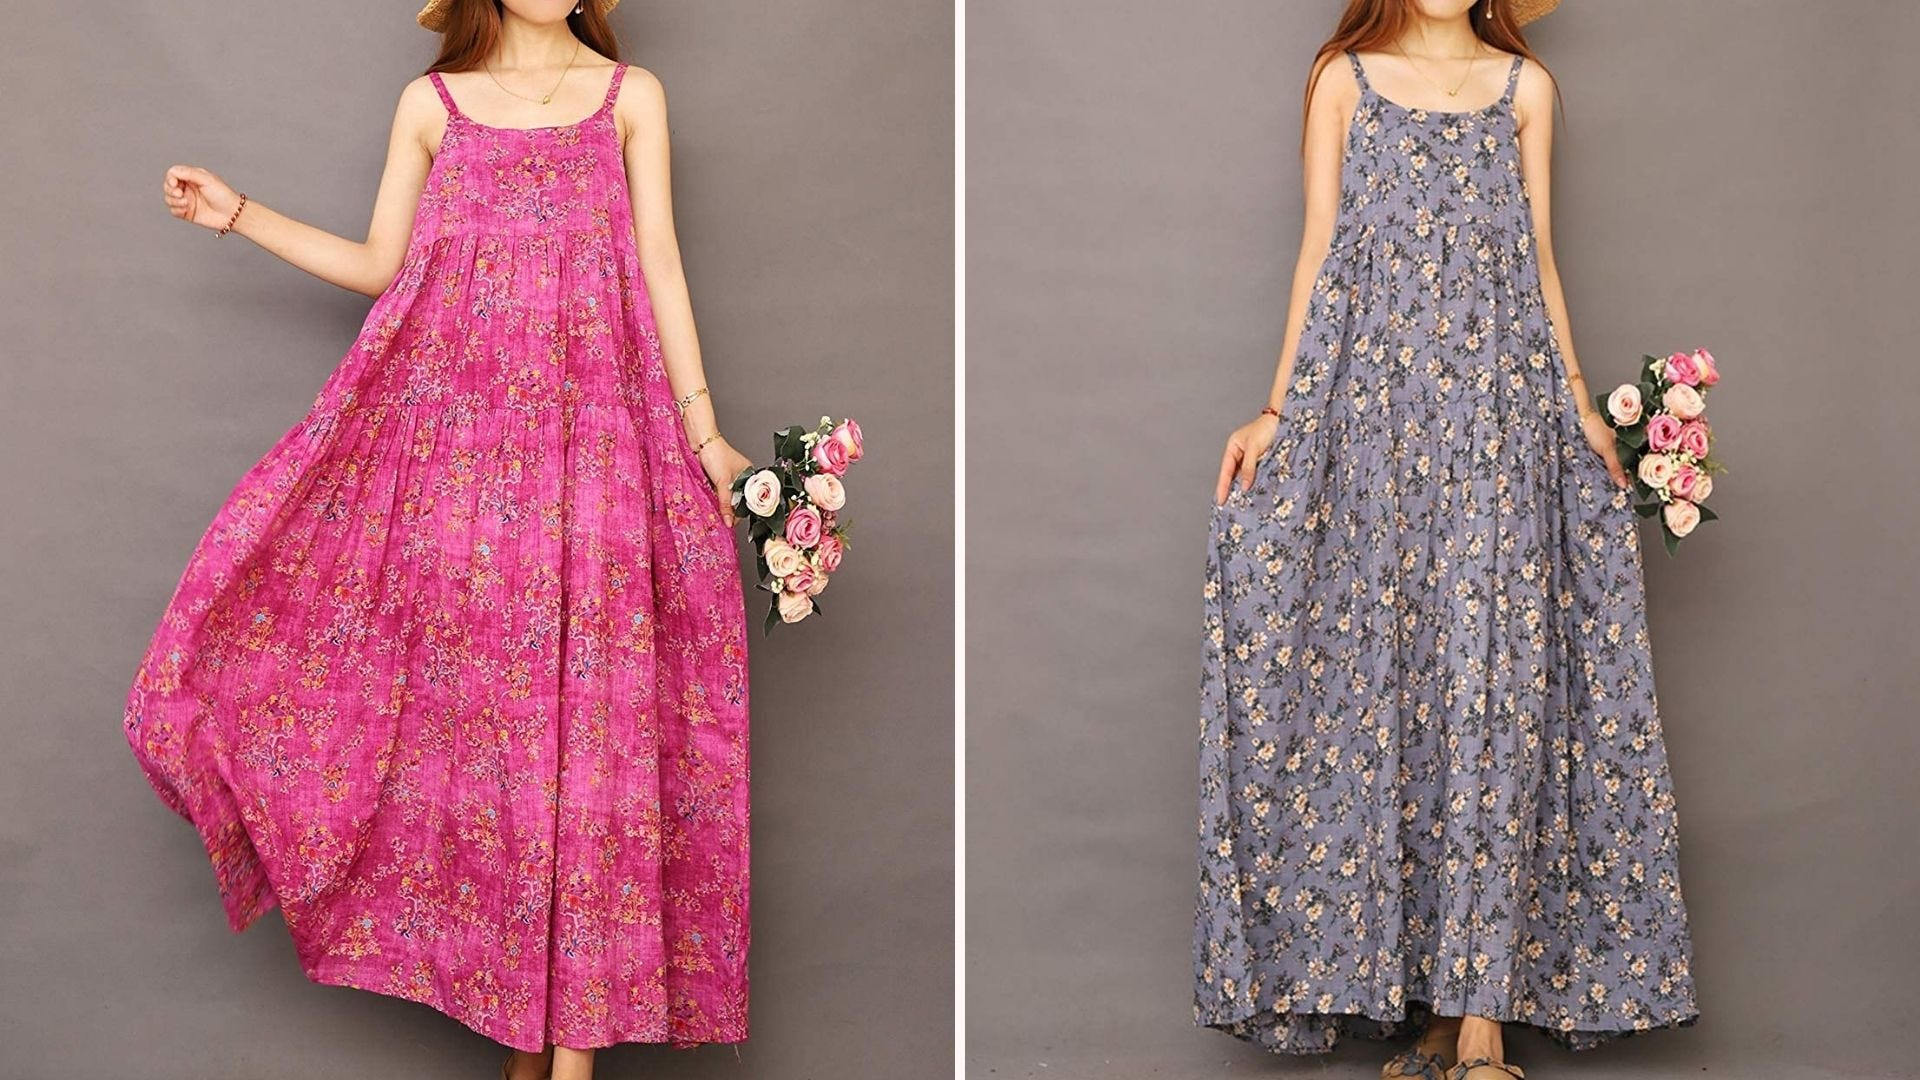 A woman in a maxi pink floral dress holding flowers; a woman in a blue-gray floral maxi dress